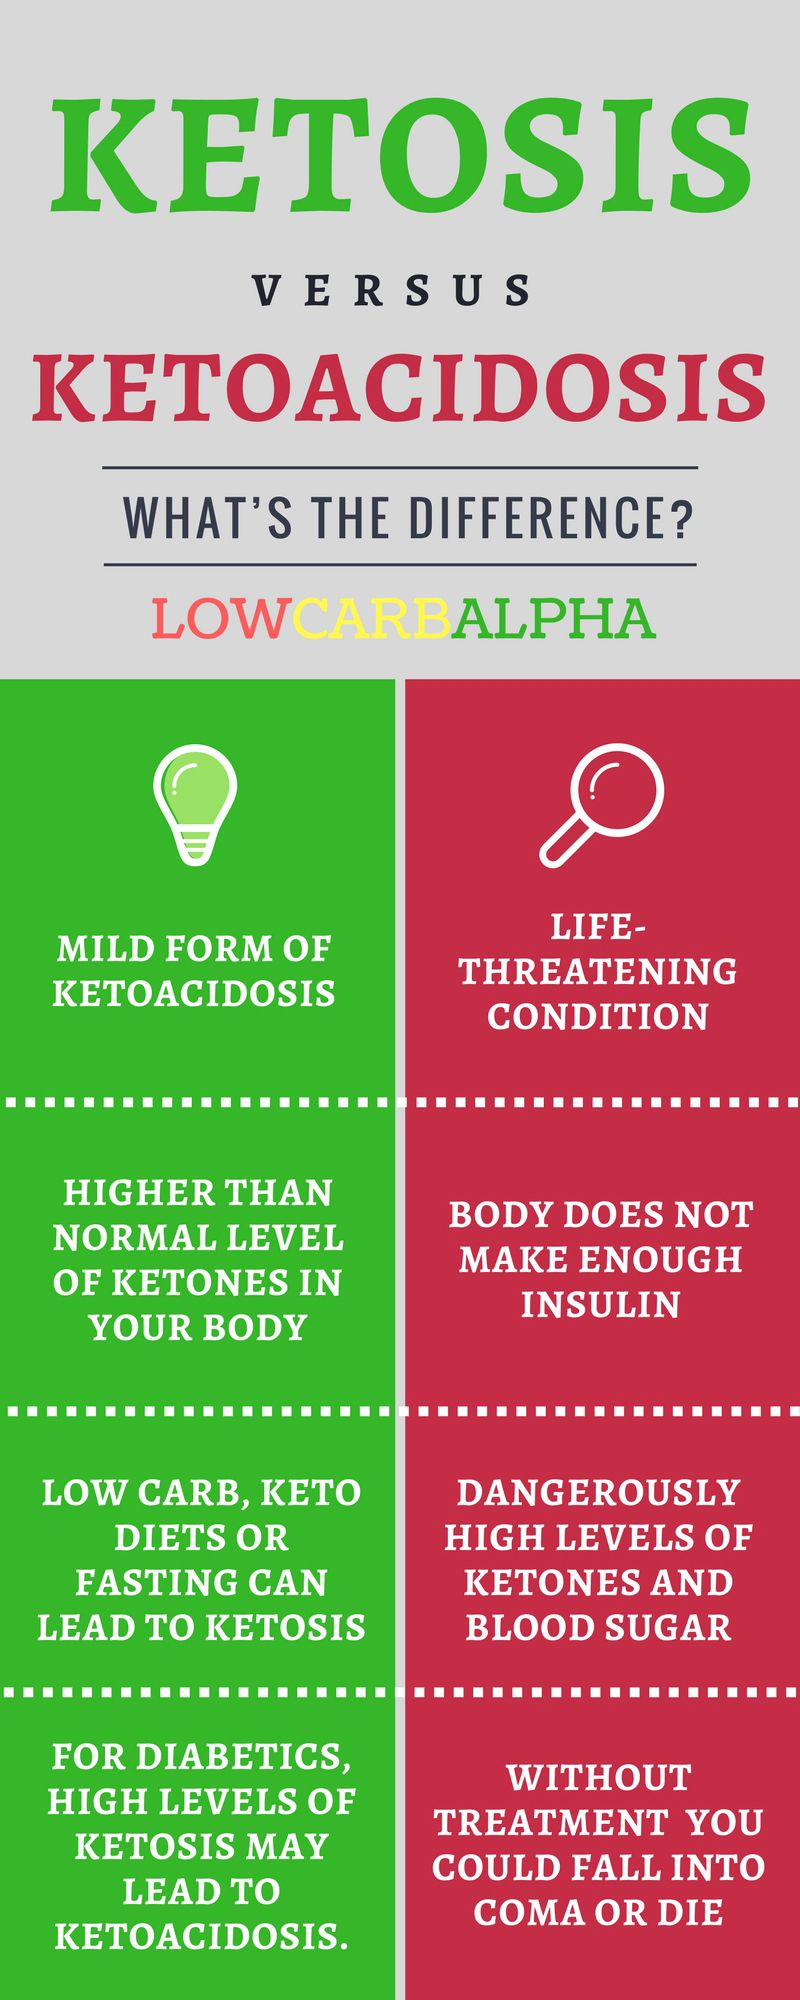 What's the Difference Between Ketosis and Diabetic Ketoacidosis forecast